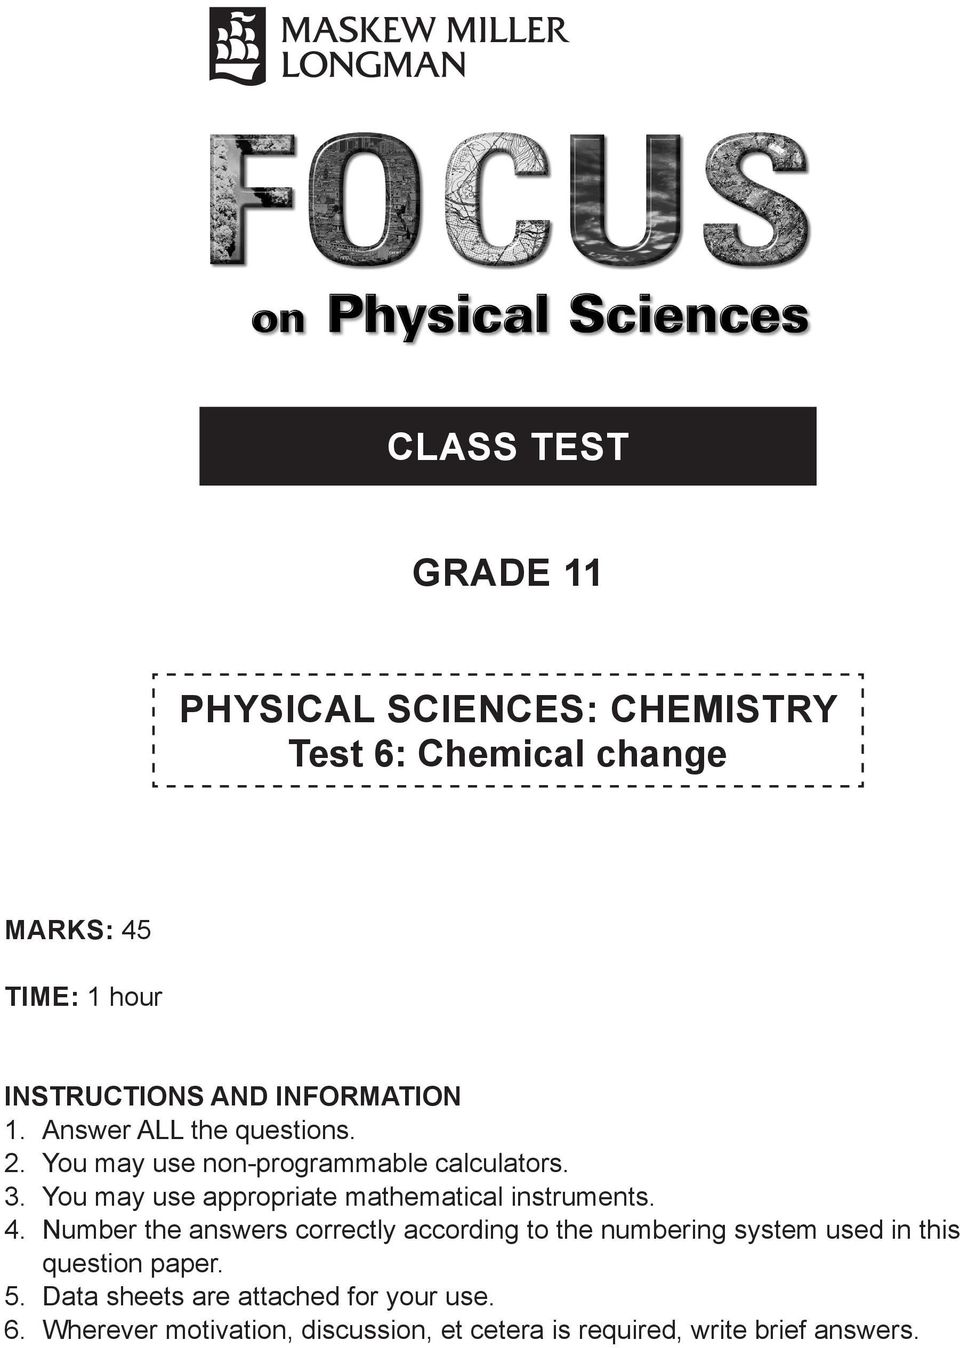 CLASS TEST GRADE 11  PHYSICAL SCIENCES: CHEMISTRY Test 6